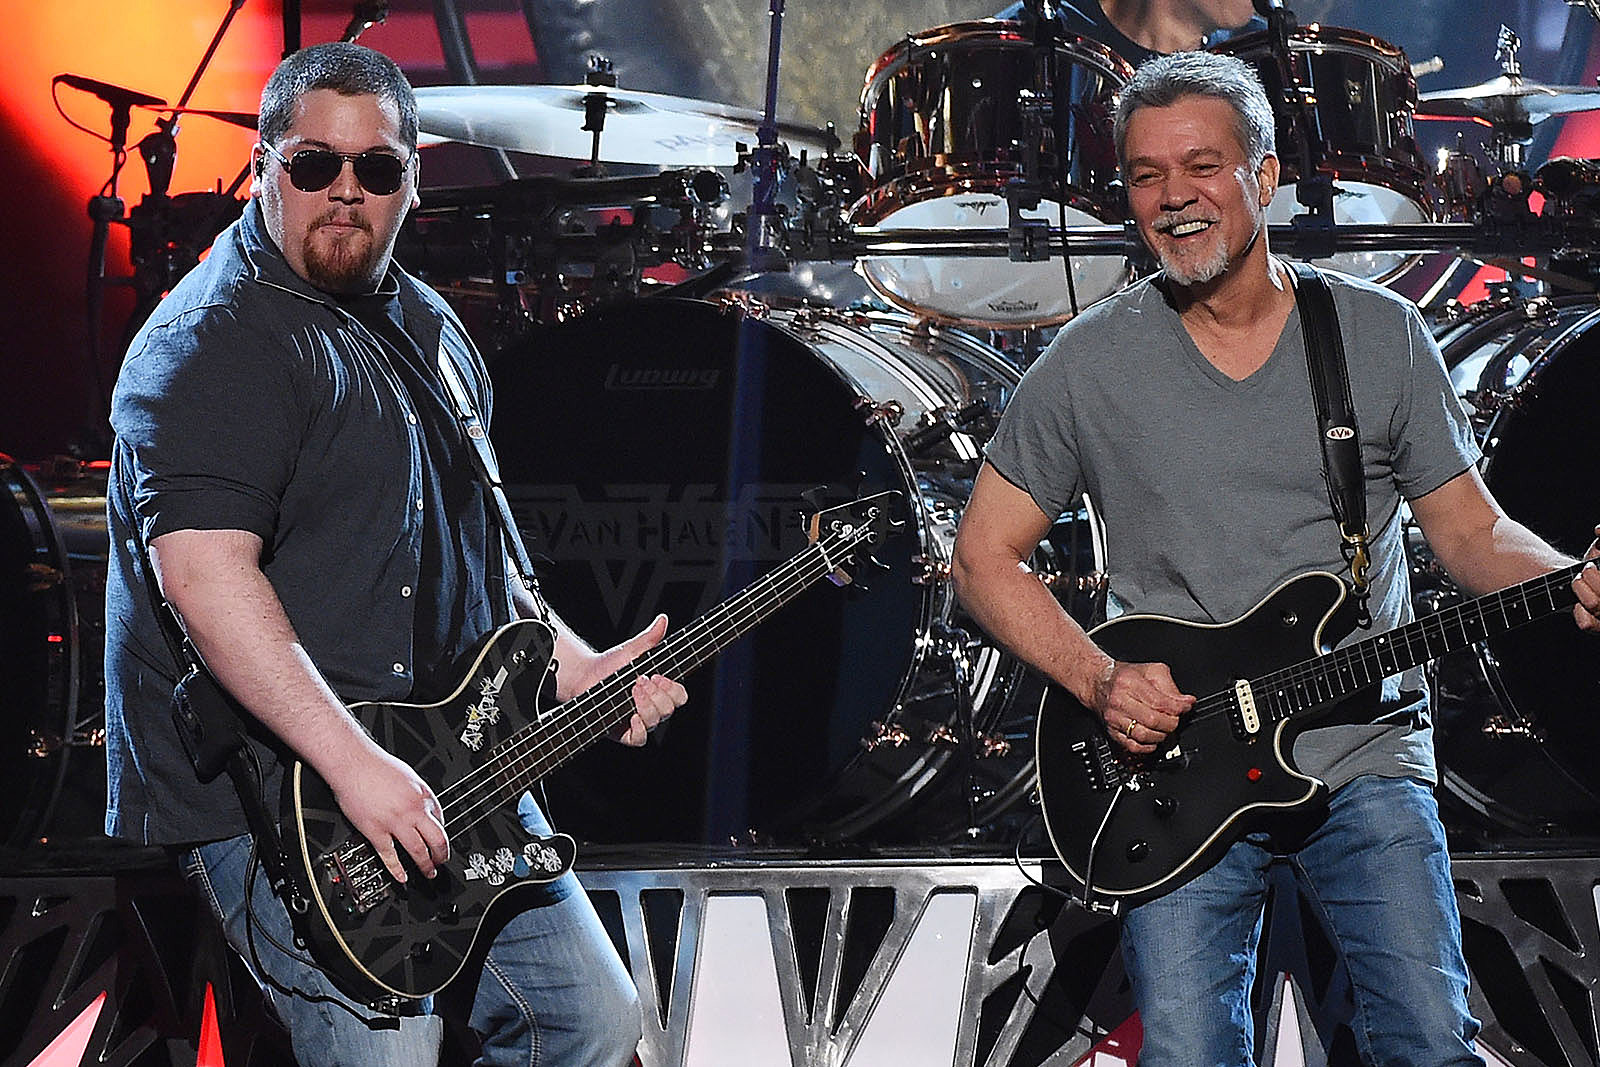 Why 'A Different Kind of Truth' Will Be Van Halen's Last Album